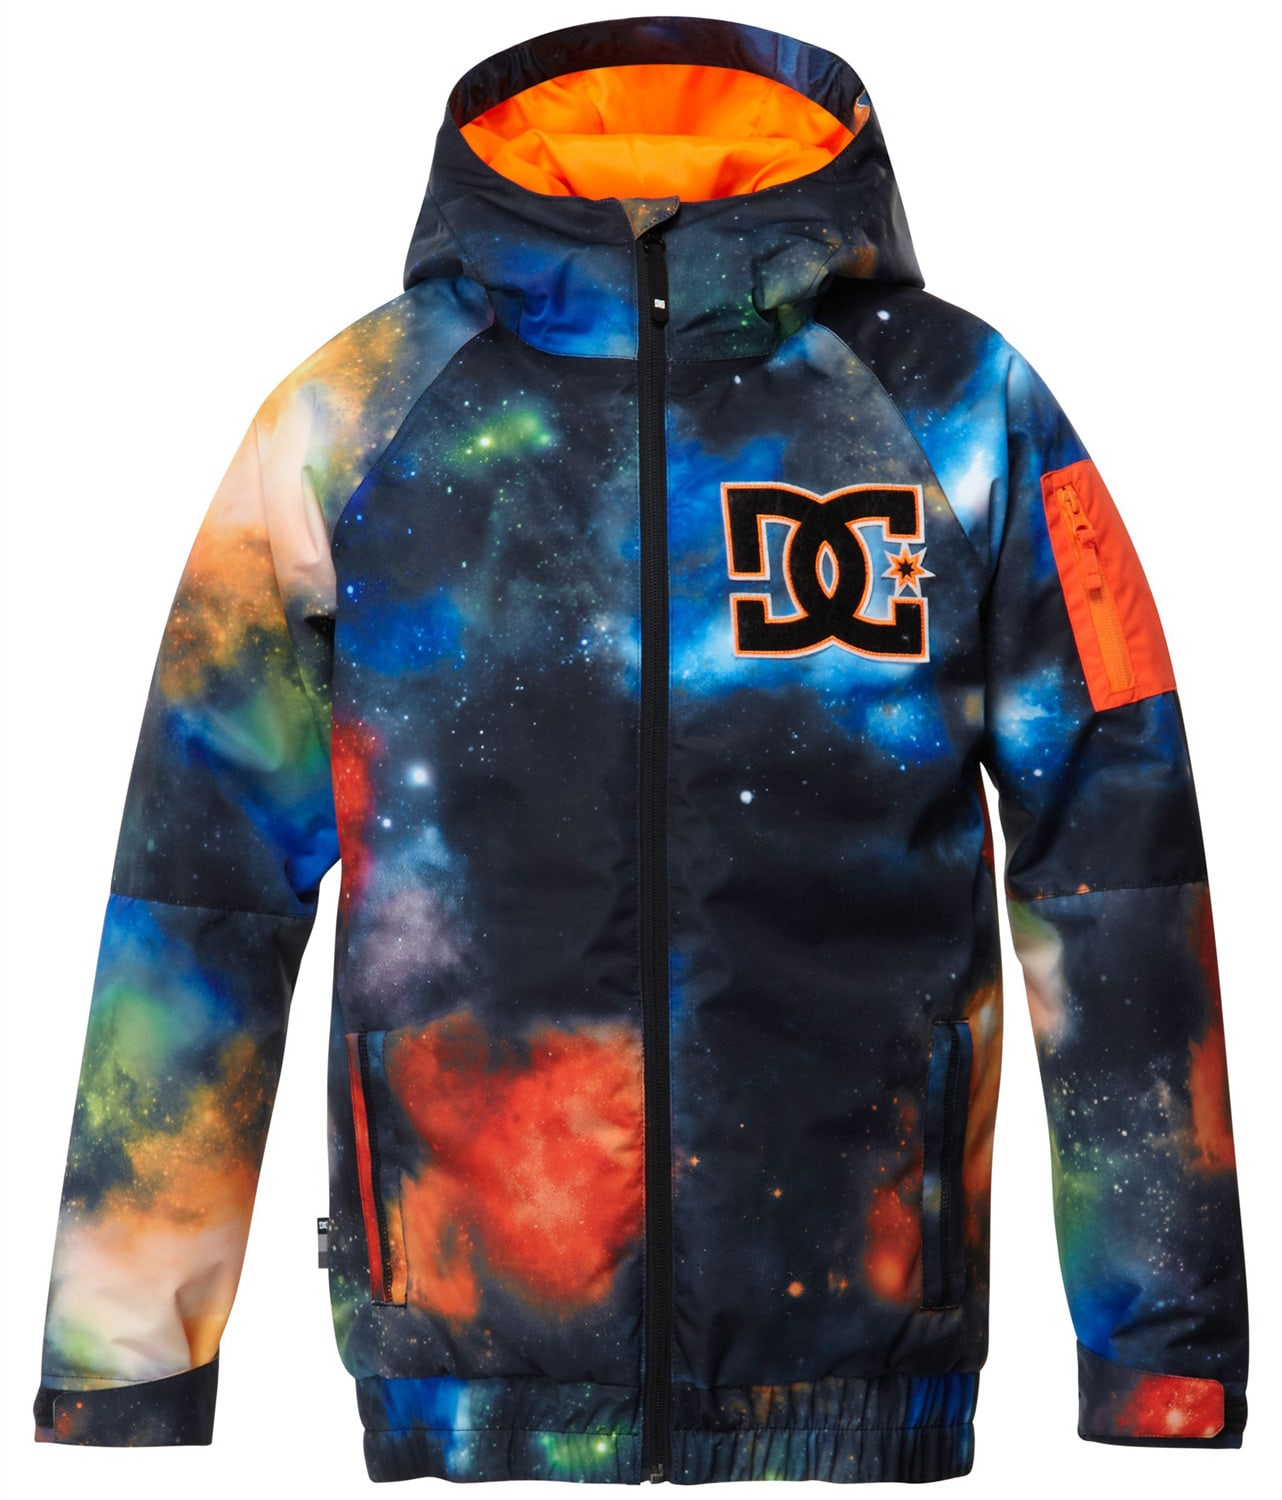 9c9a9a42f DC Troop Snowboard Jacket Kids, Youth on PopScreen